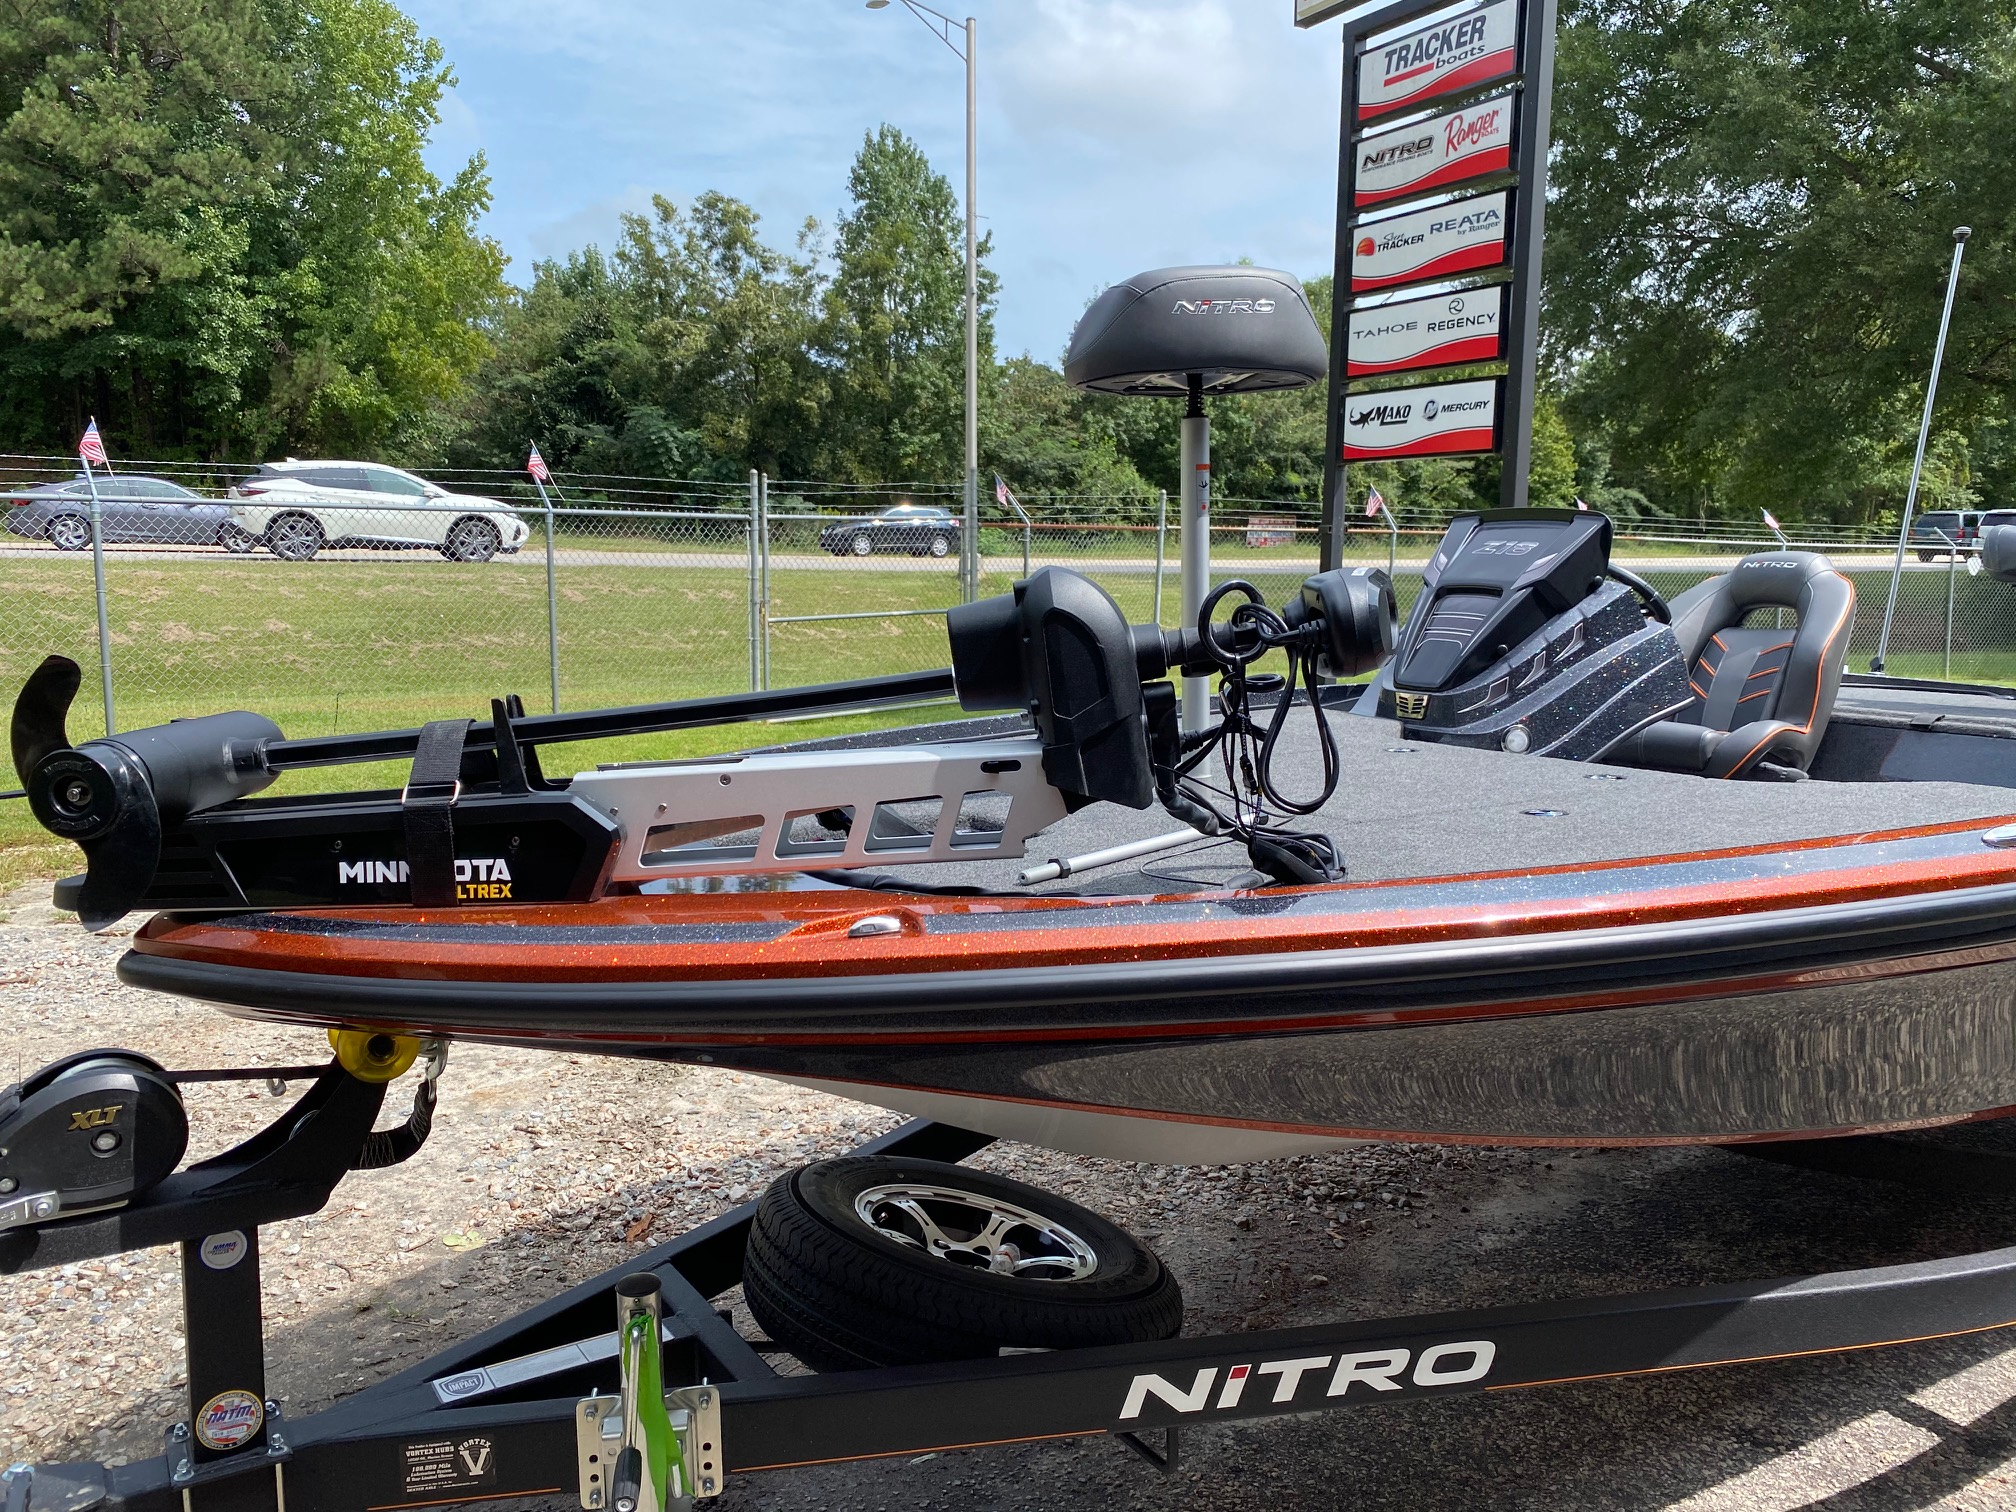 2021 Nitro boat for sale, model of the boat is Z18 W/150L PXS4 & Image # 32 of 47